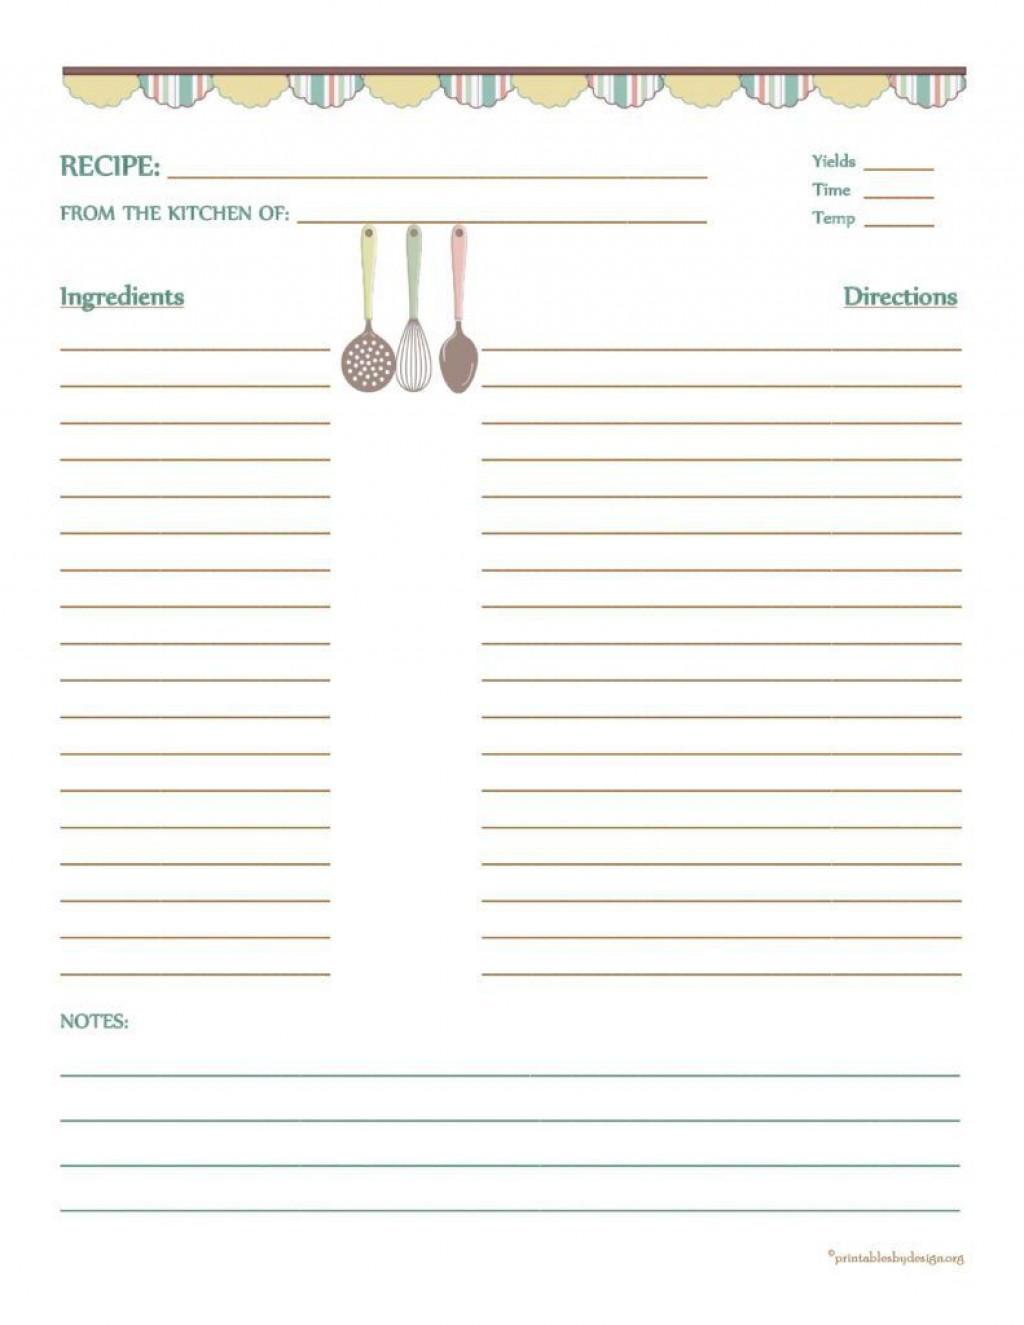 000 Simple Free Recipe Template For Word Image  Book Editable Card Microsoft 4x6 PageLarge